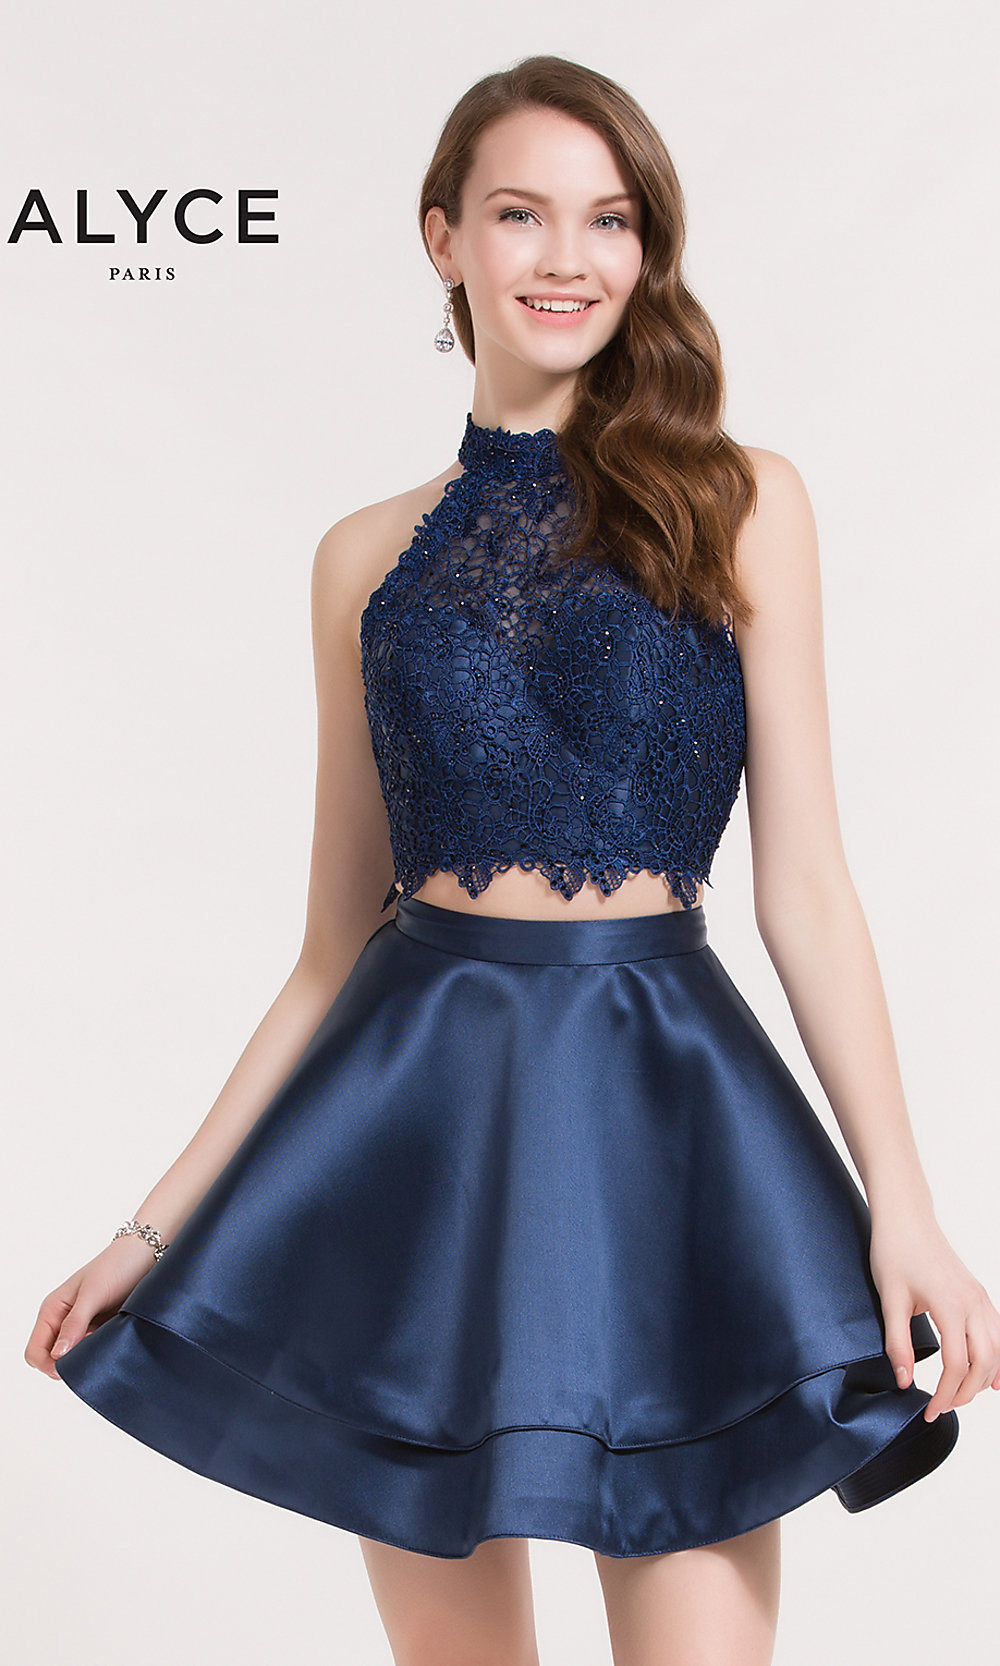 Alyce Paris Two Piece Homecoming Dress Promgirl